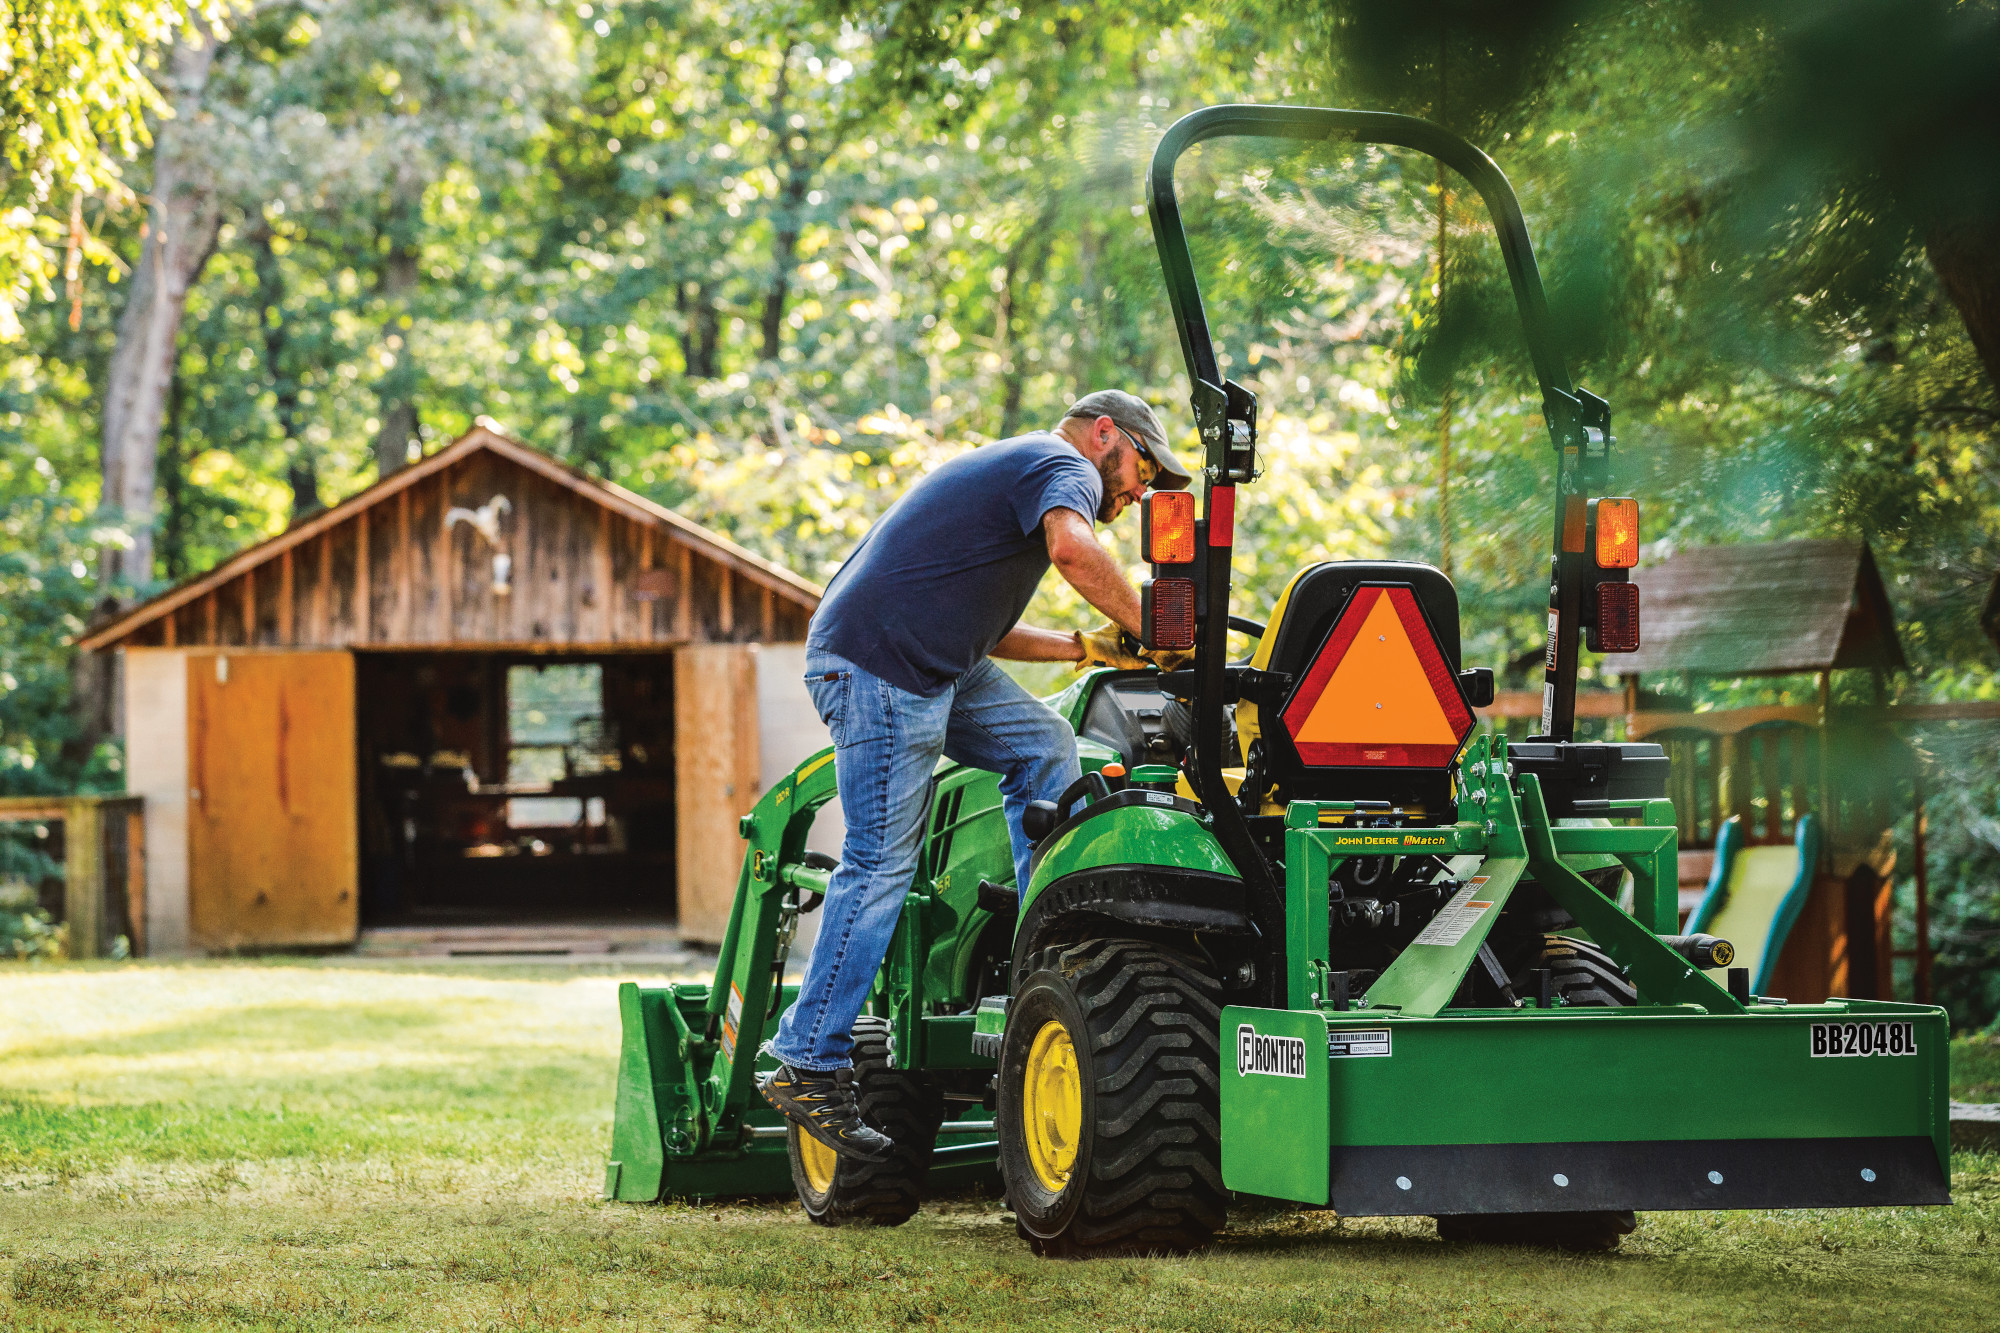 Man getting onto John Deere compact utility tractor